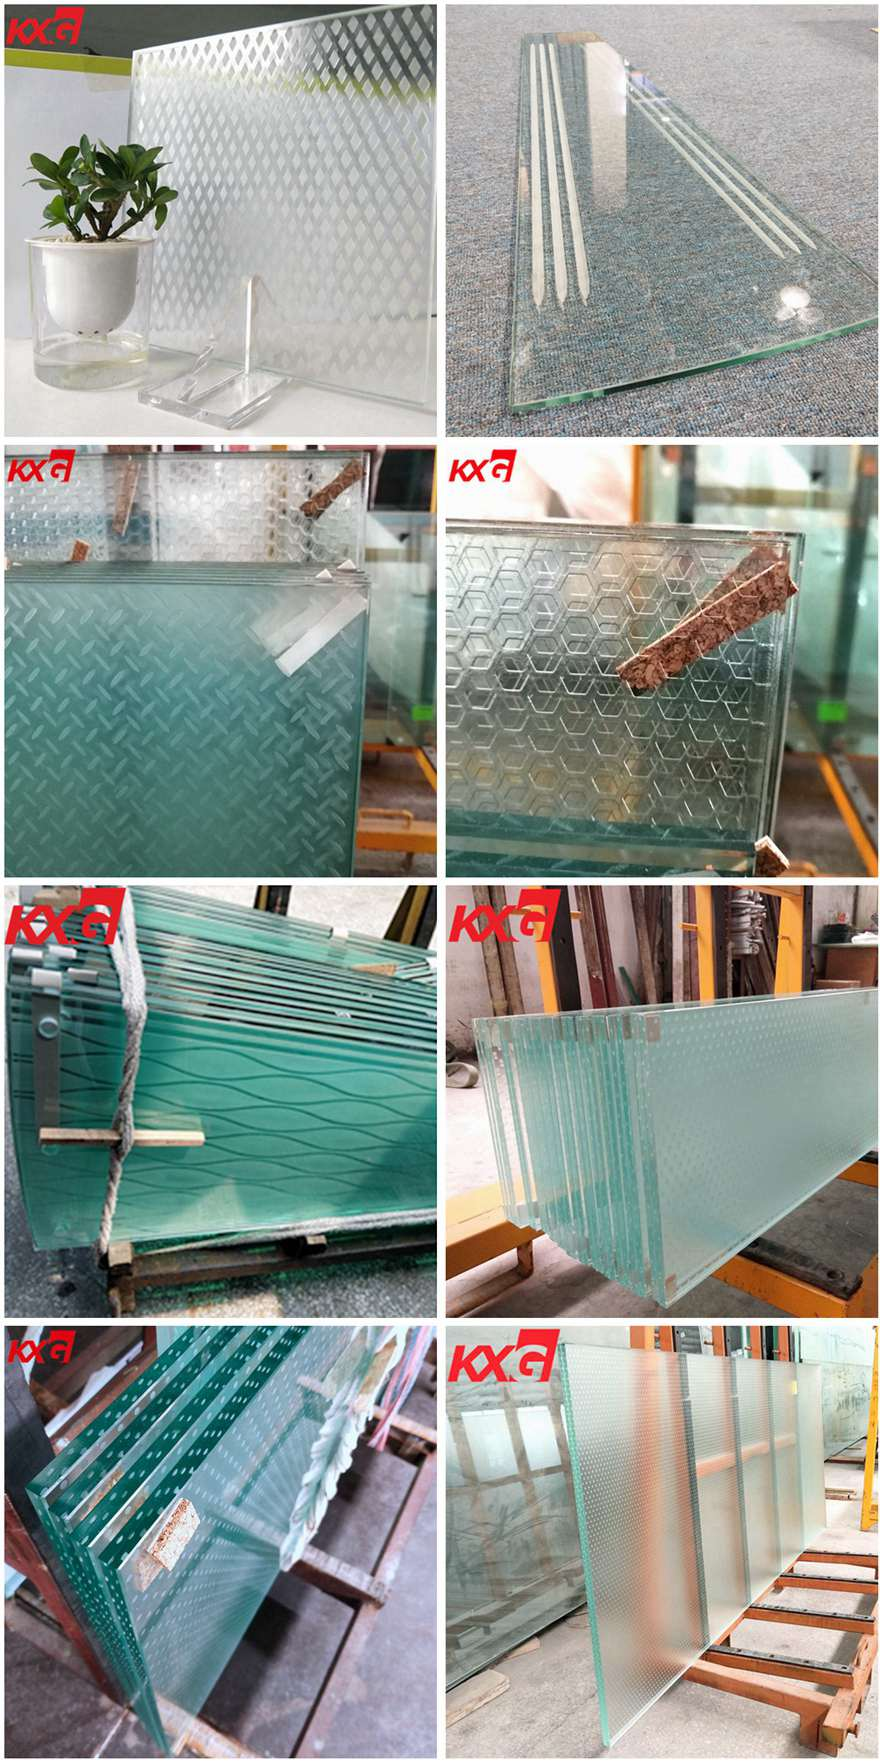 Low iron ultra clear anti slip glass